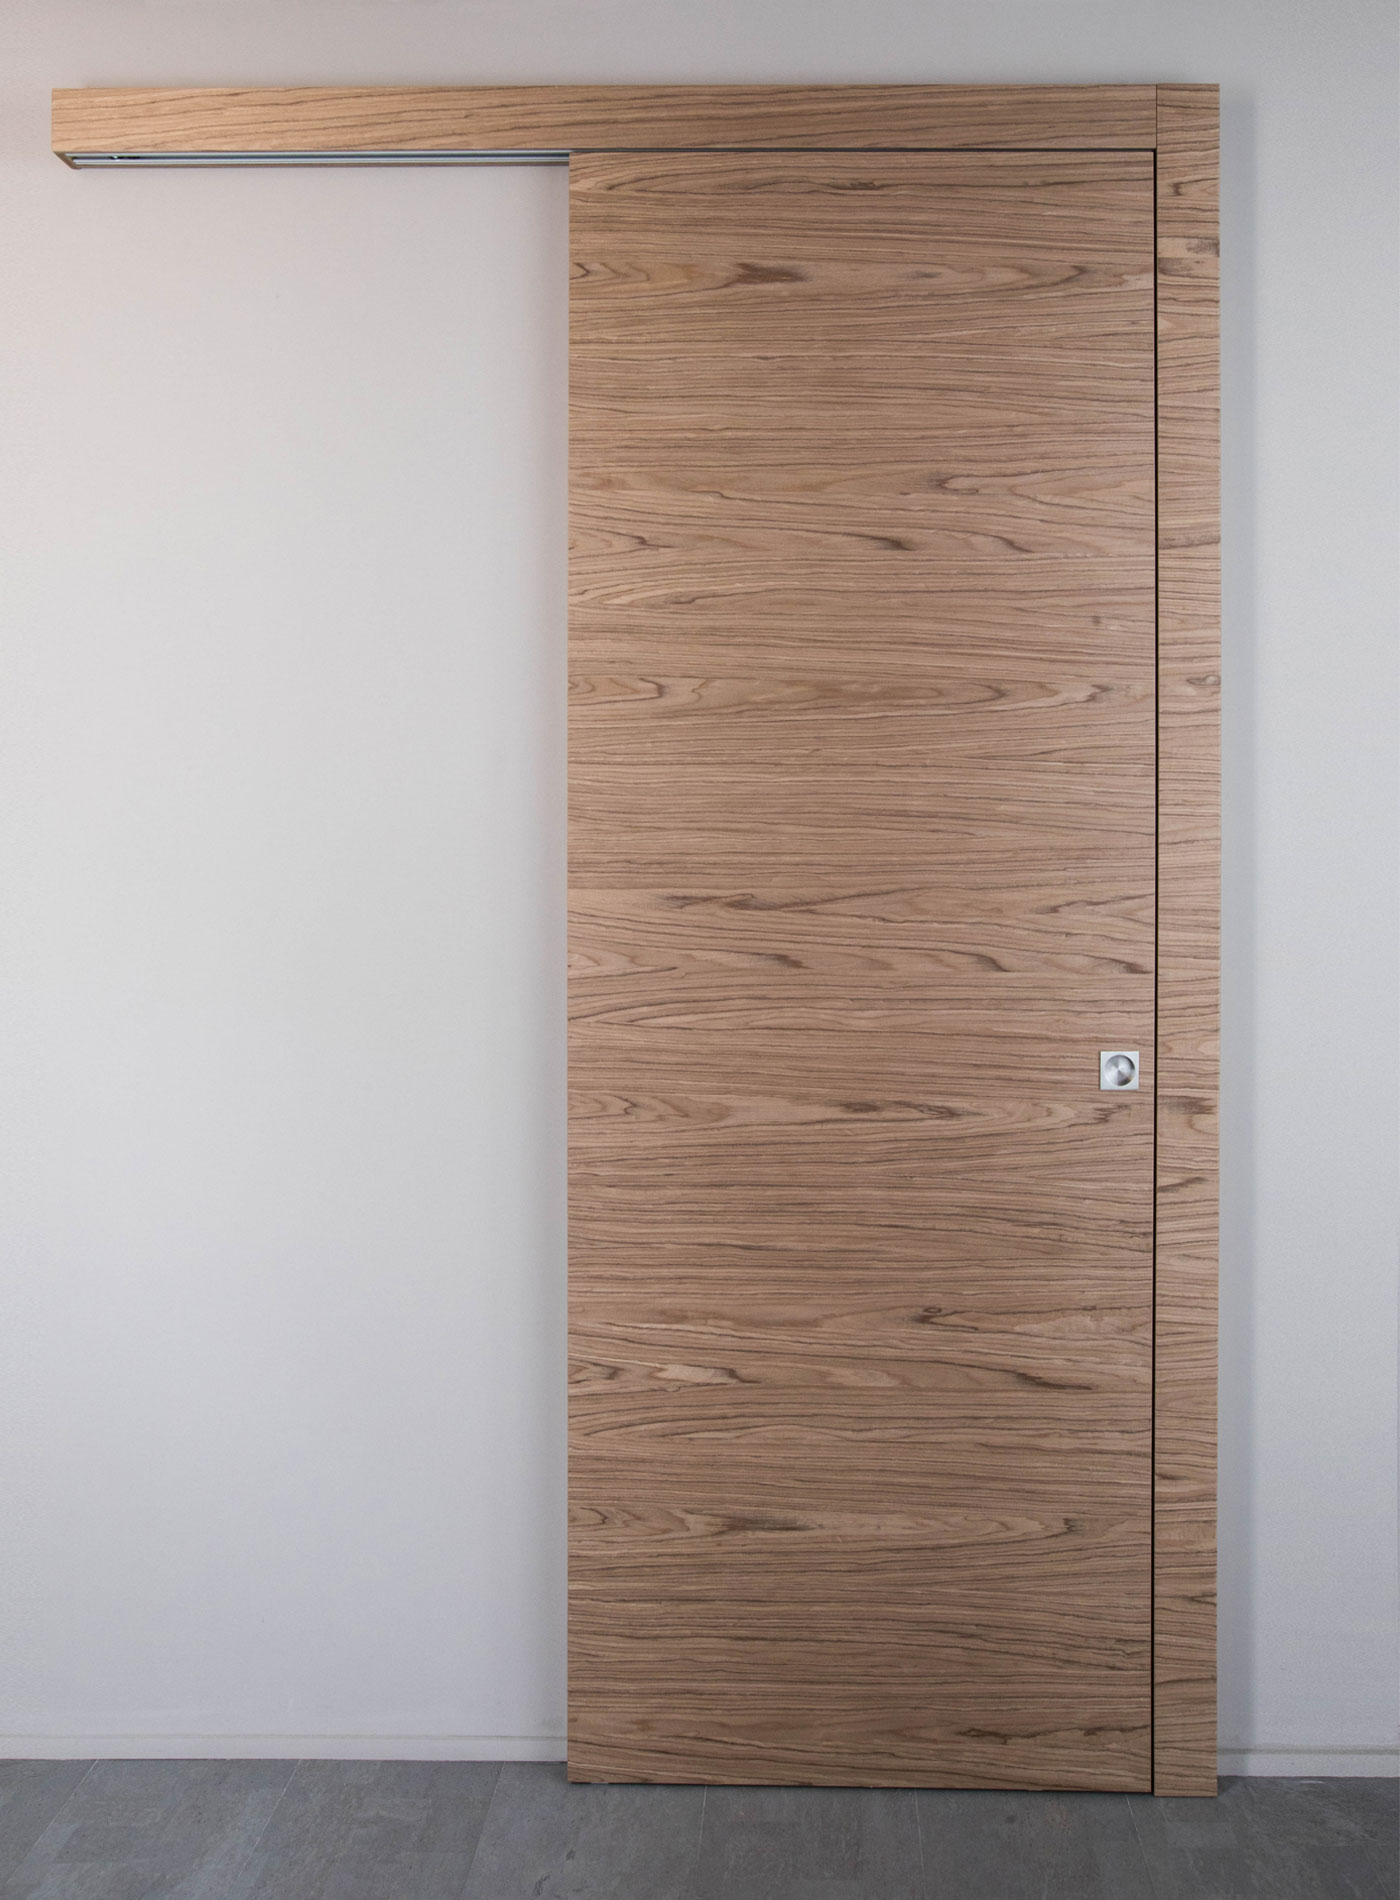 Tablo Sliding door outside the wall with closing jamb